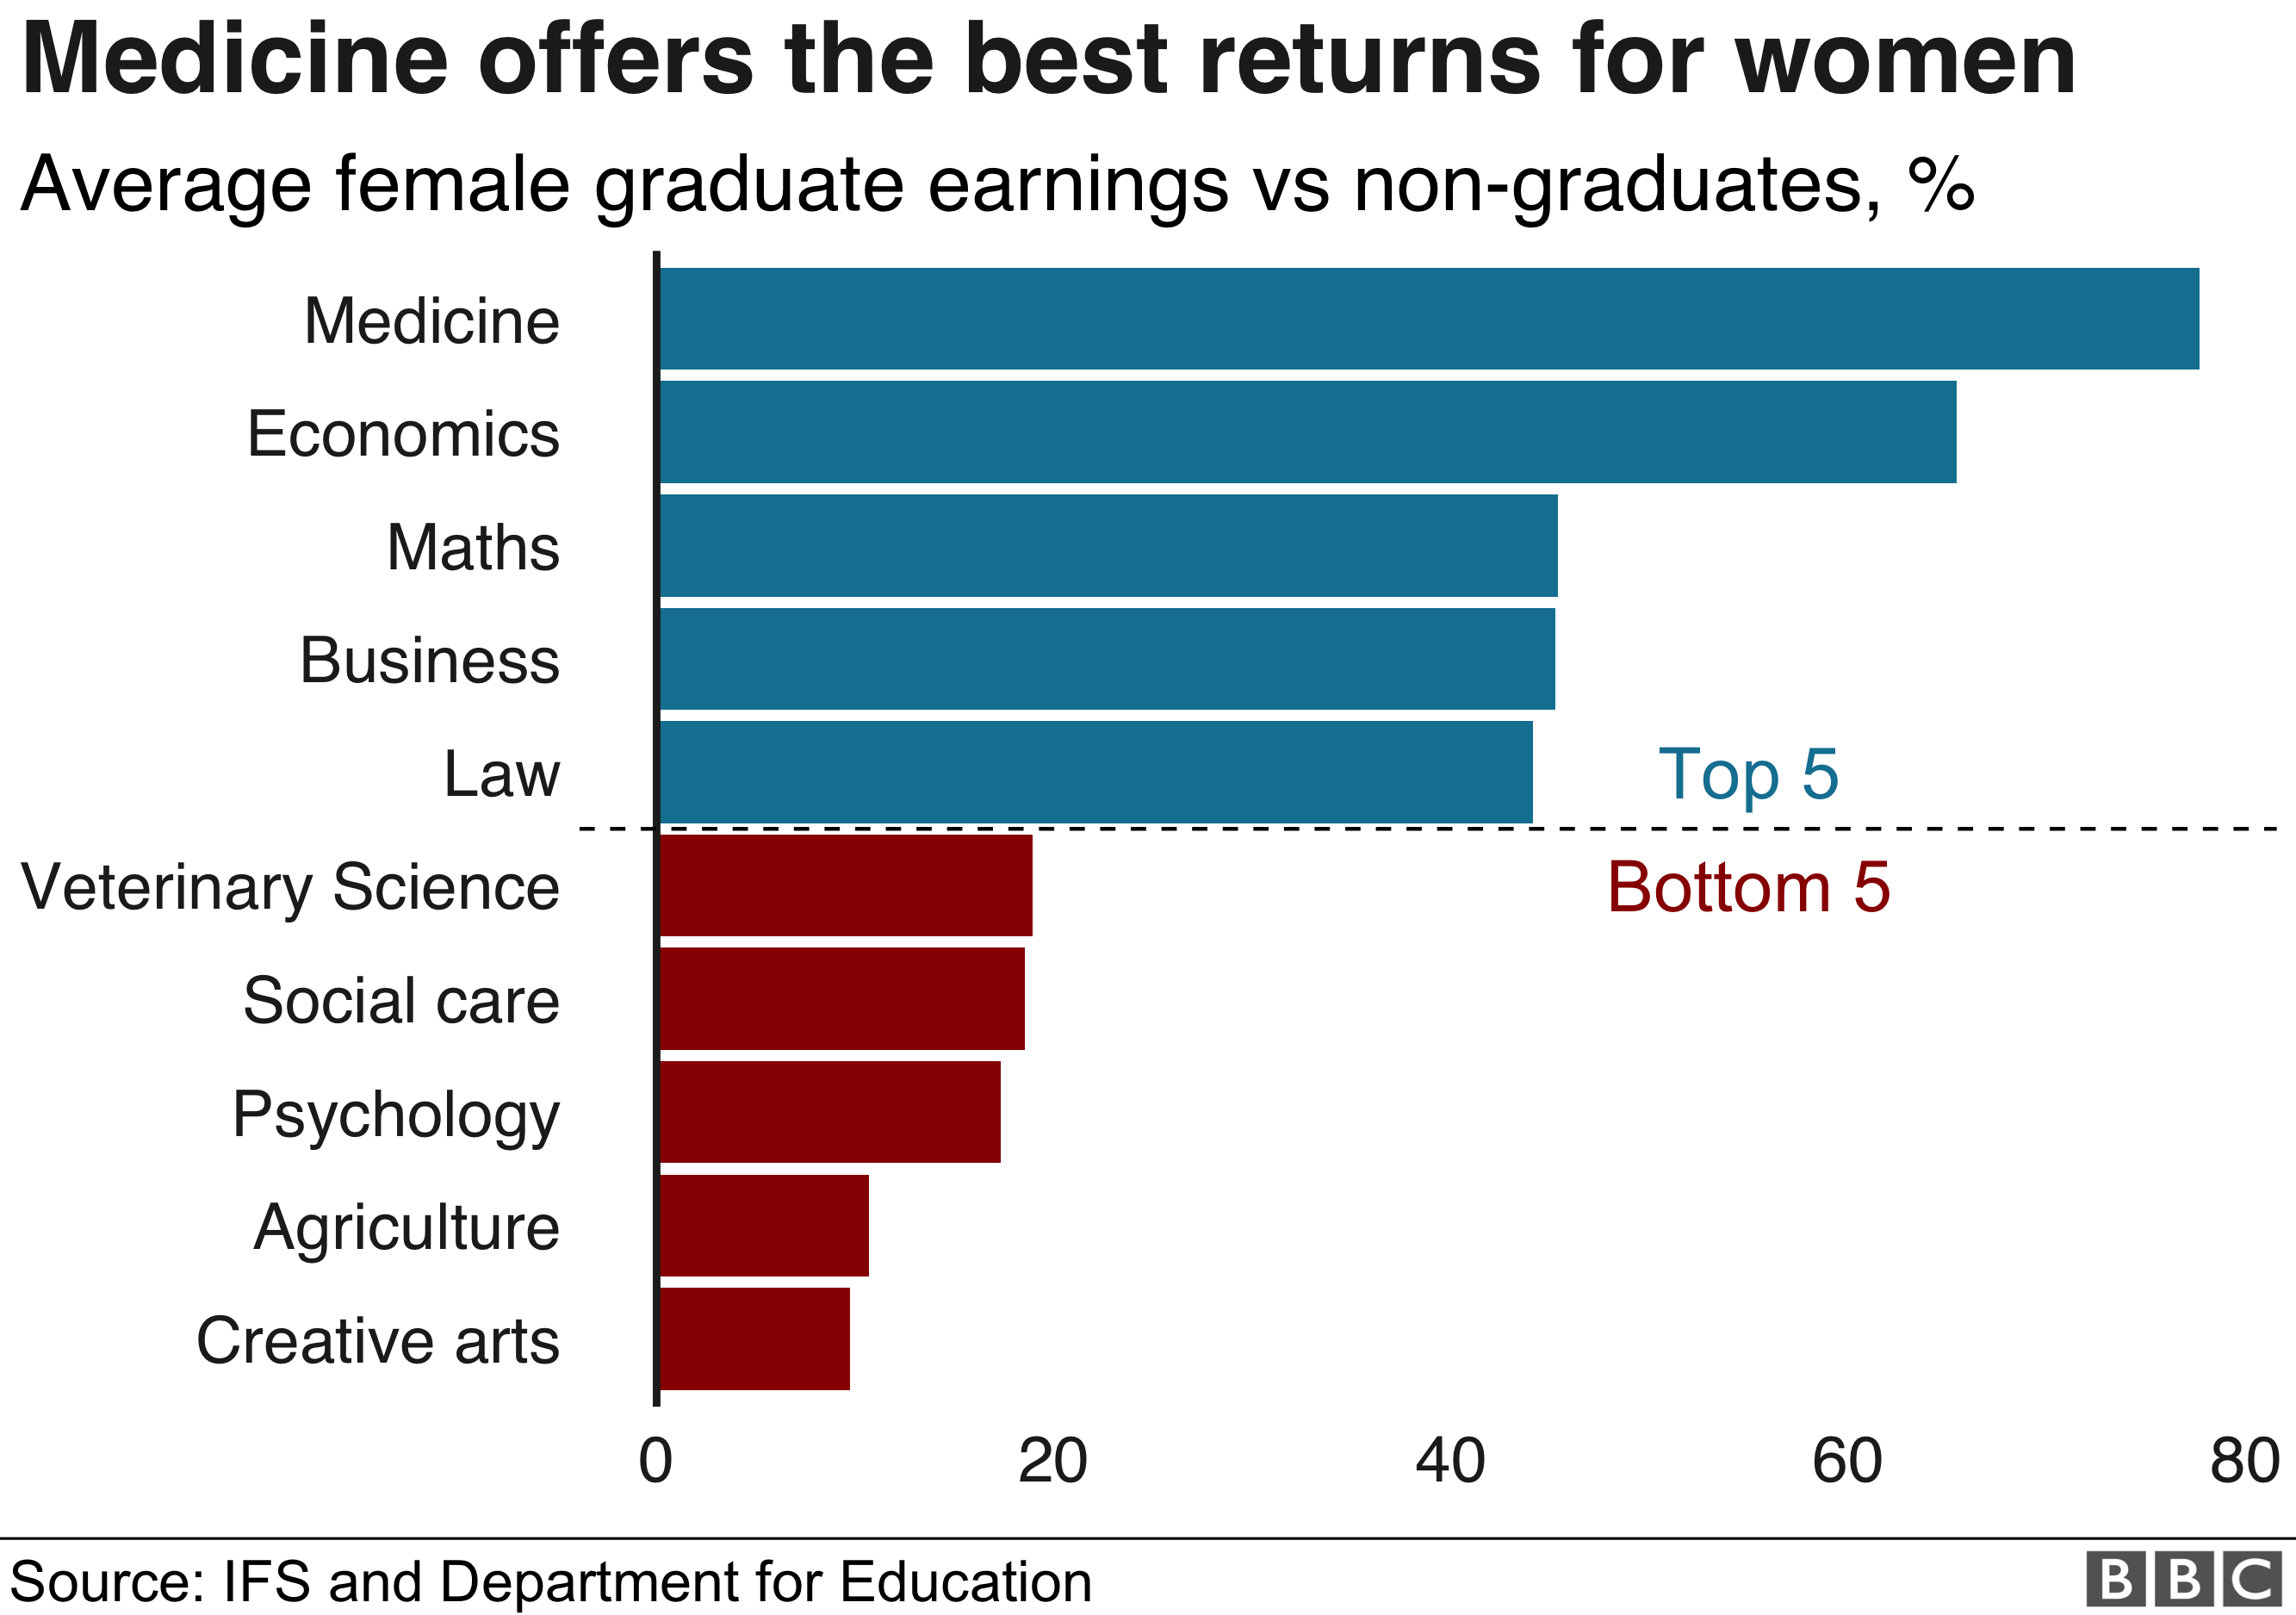 Subjects and earnings for women